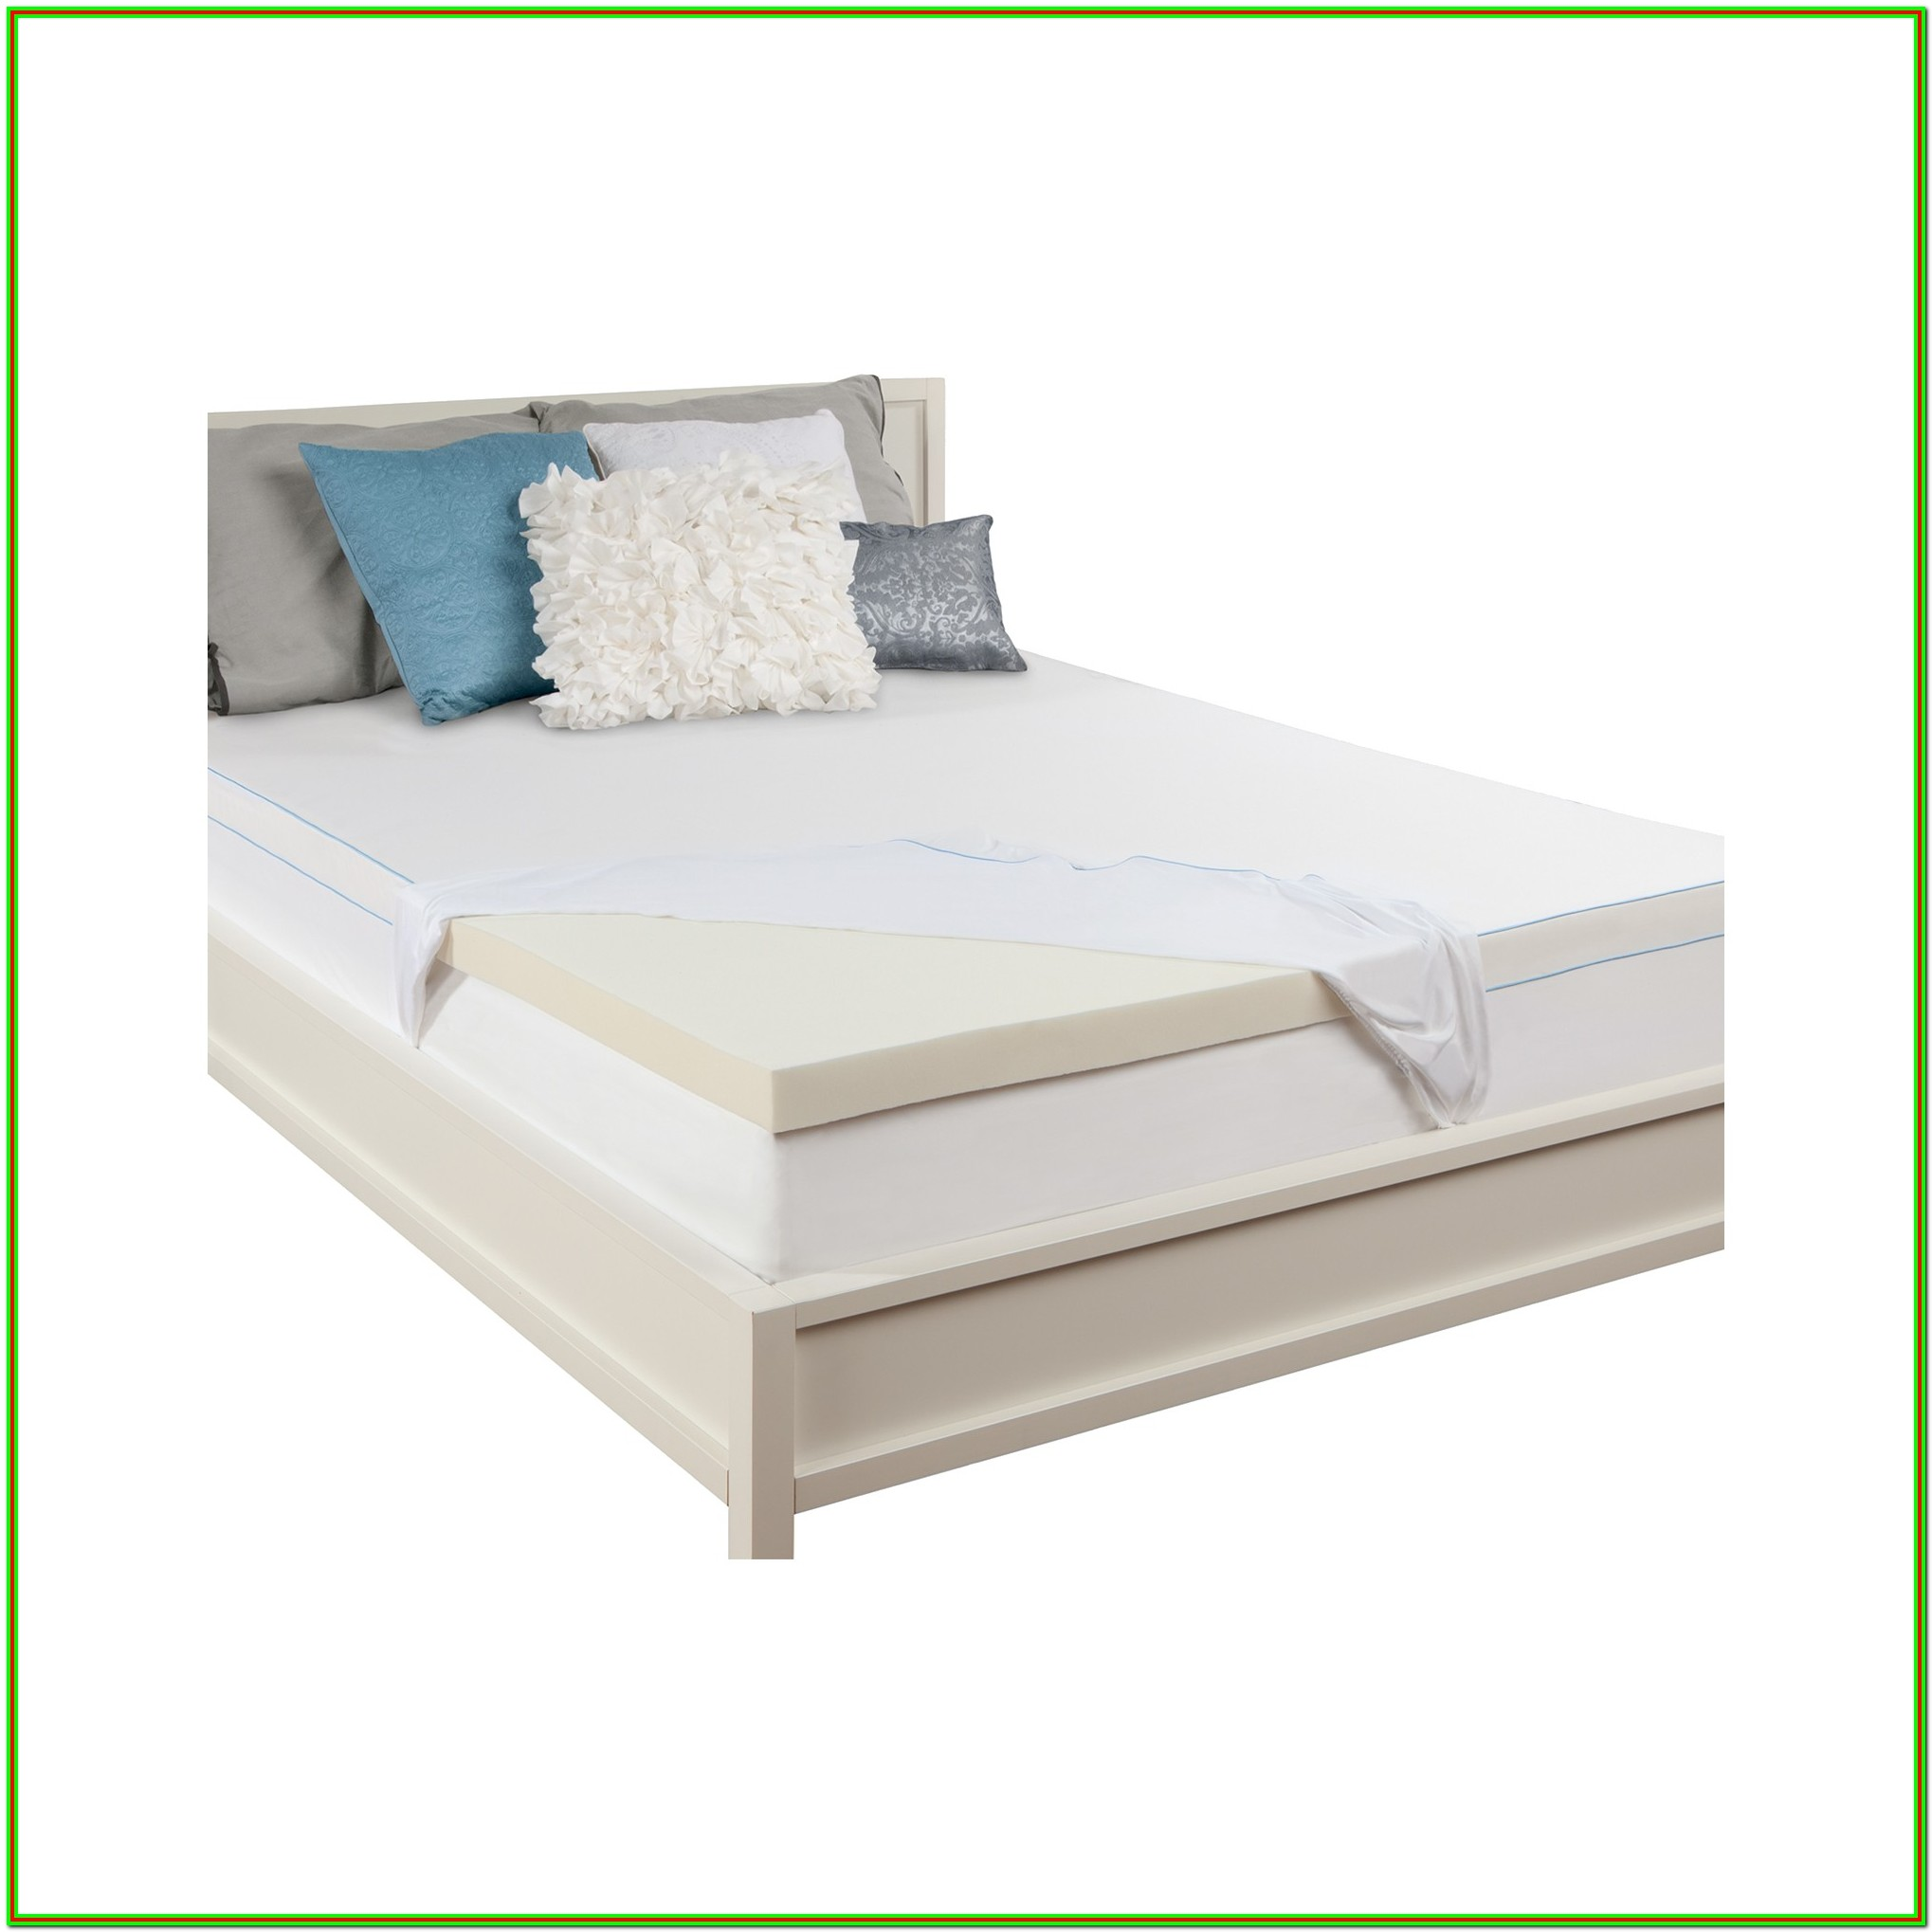 Tempurpedic Mattress Pad Bed Bath And Beyond